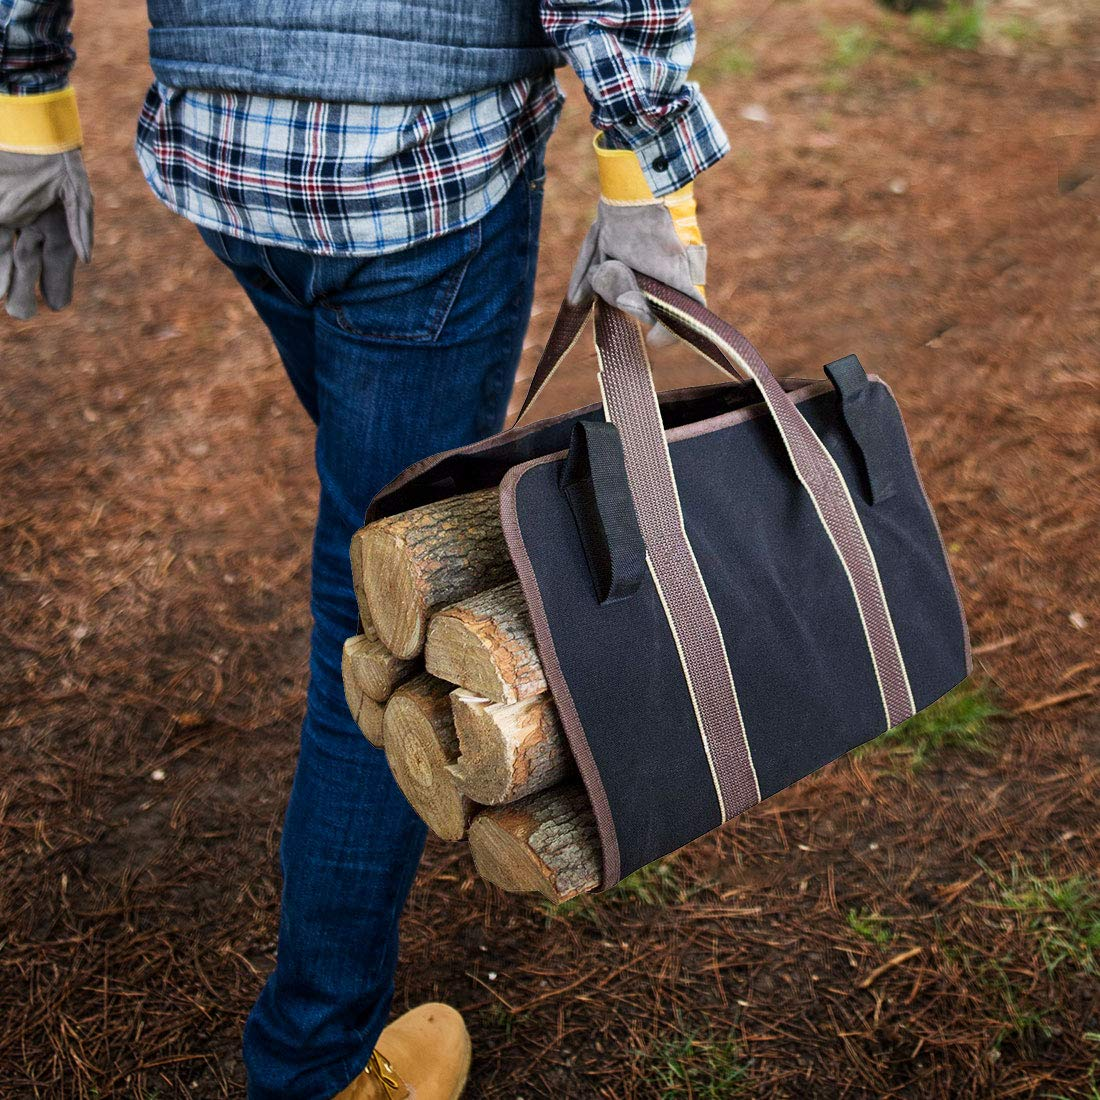 LingsFire Log Carrier Firewood Tote Wood Carrying Bag Fireplace 16oz Canvas Wood Tote Bag Extra Large Firewood Holder with Handles Fireplace Wood Stove Accessories for Camping Beaches (Black) by LingsFire (Image #5)